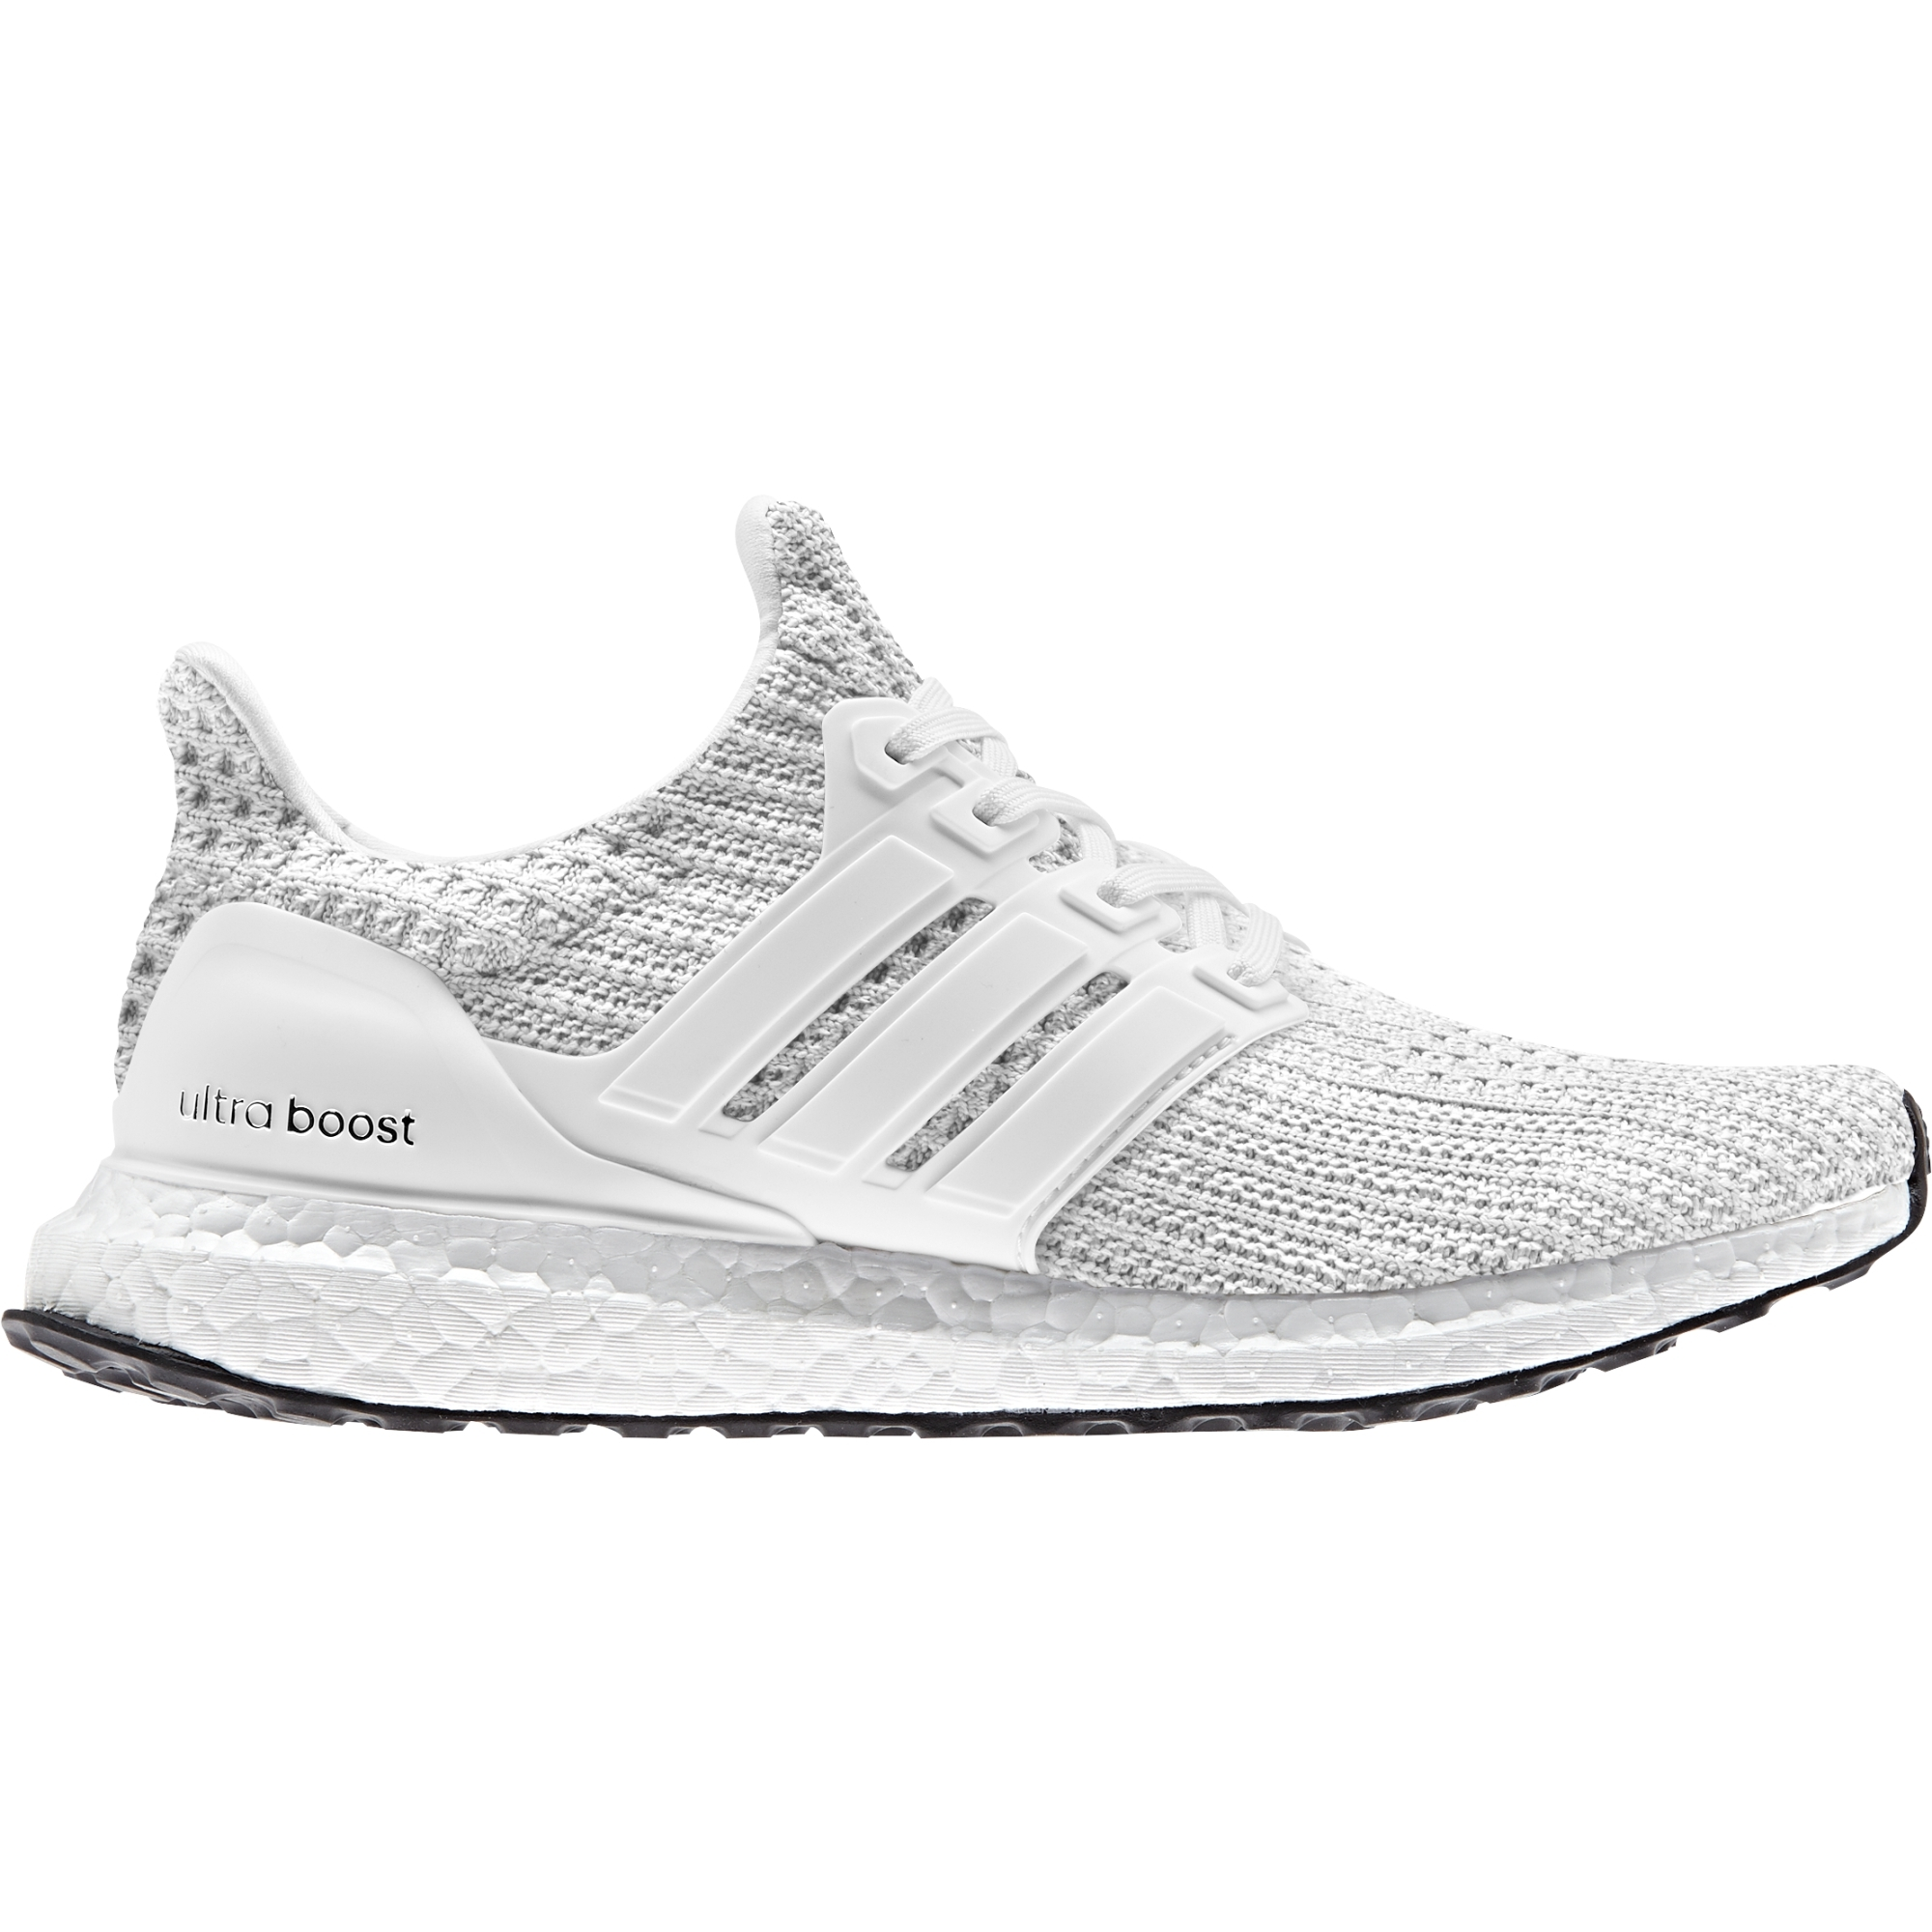 new arrival 5f6a7 6bc57 Wiggle   adidas Women s Ultra Boost Shoes   Running Shoes